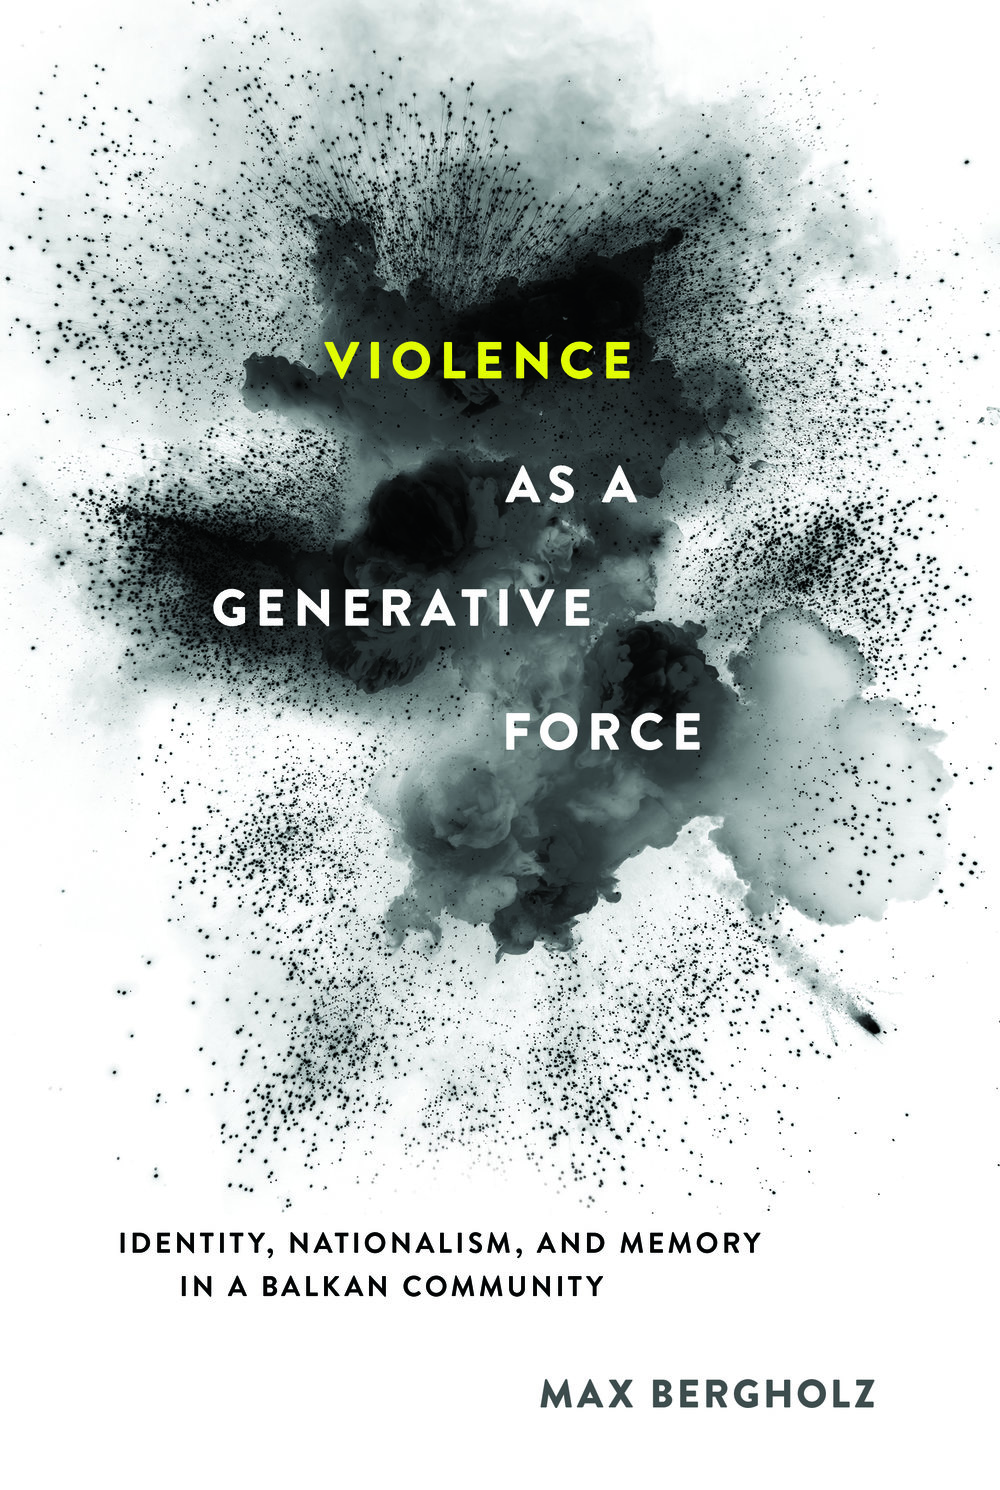 Violence as a Generative Force, Max Bergholz